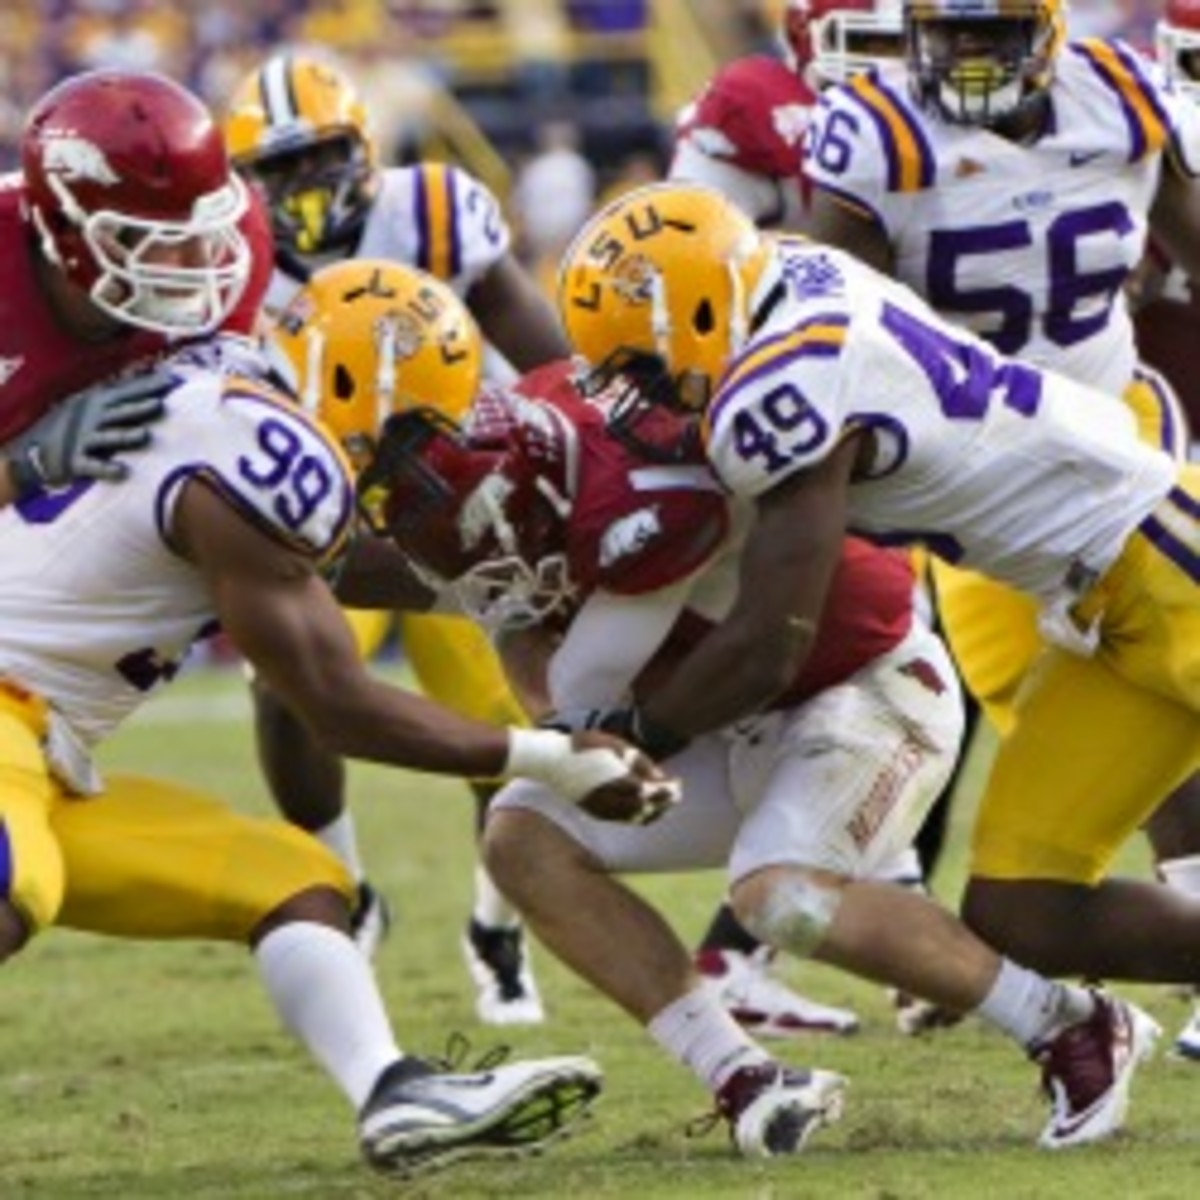 LSU's Sam Montgomery (left) and Barkevious Mingo (right) say they've bet (Wesley Hitt/Getty Images)